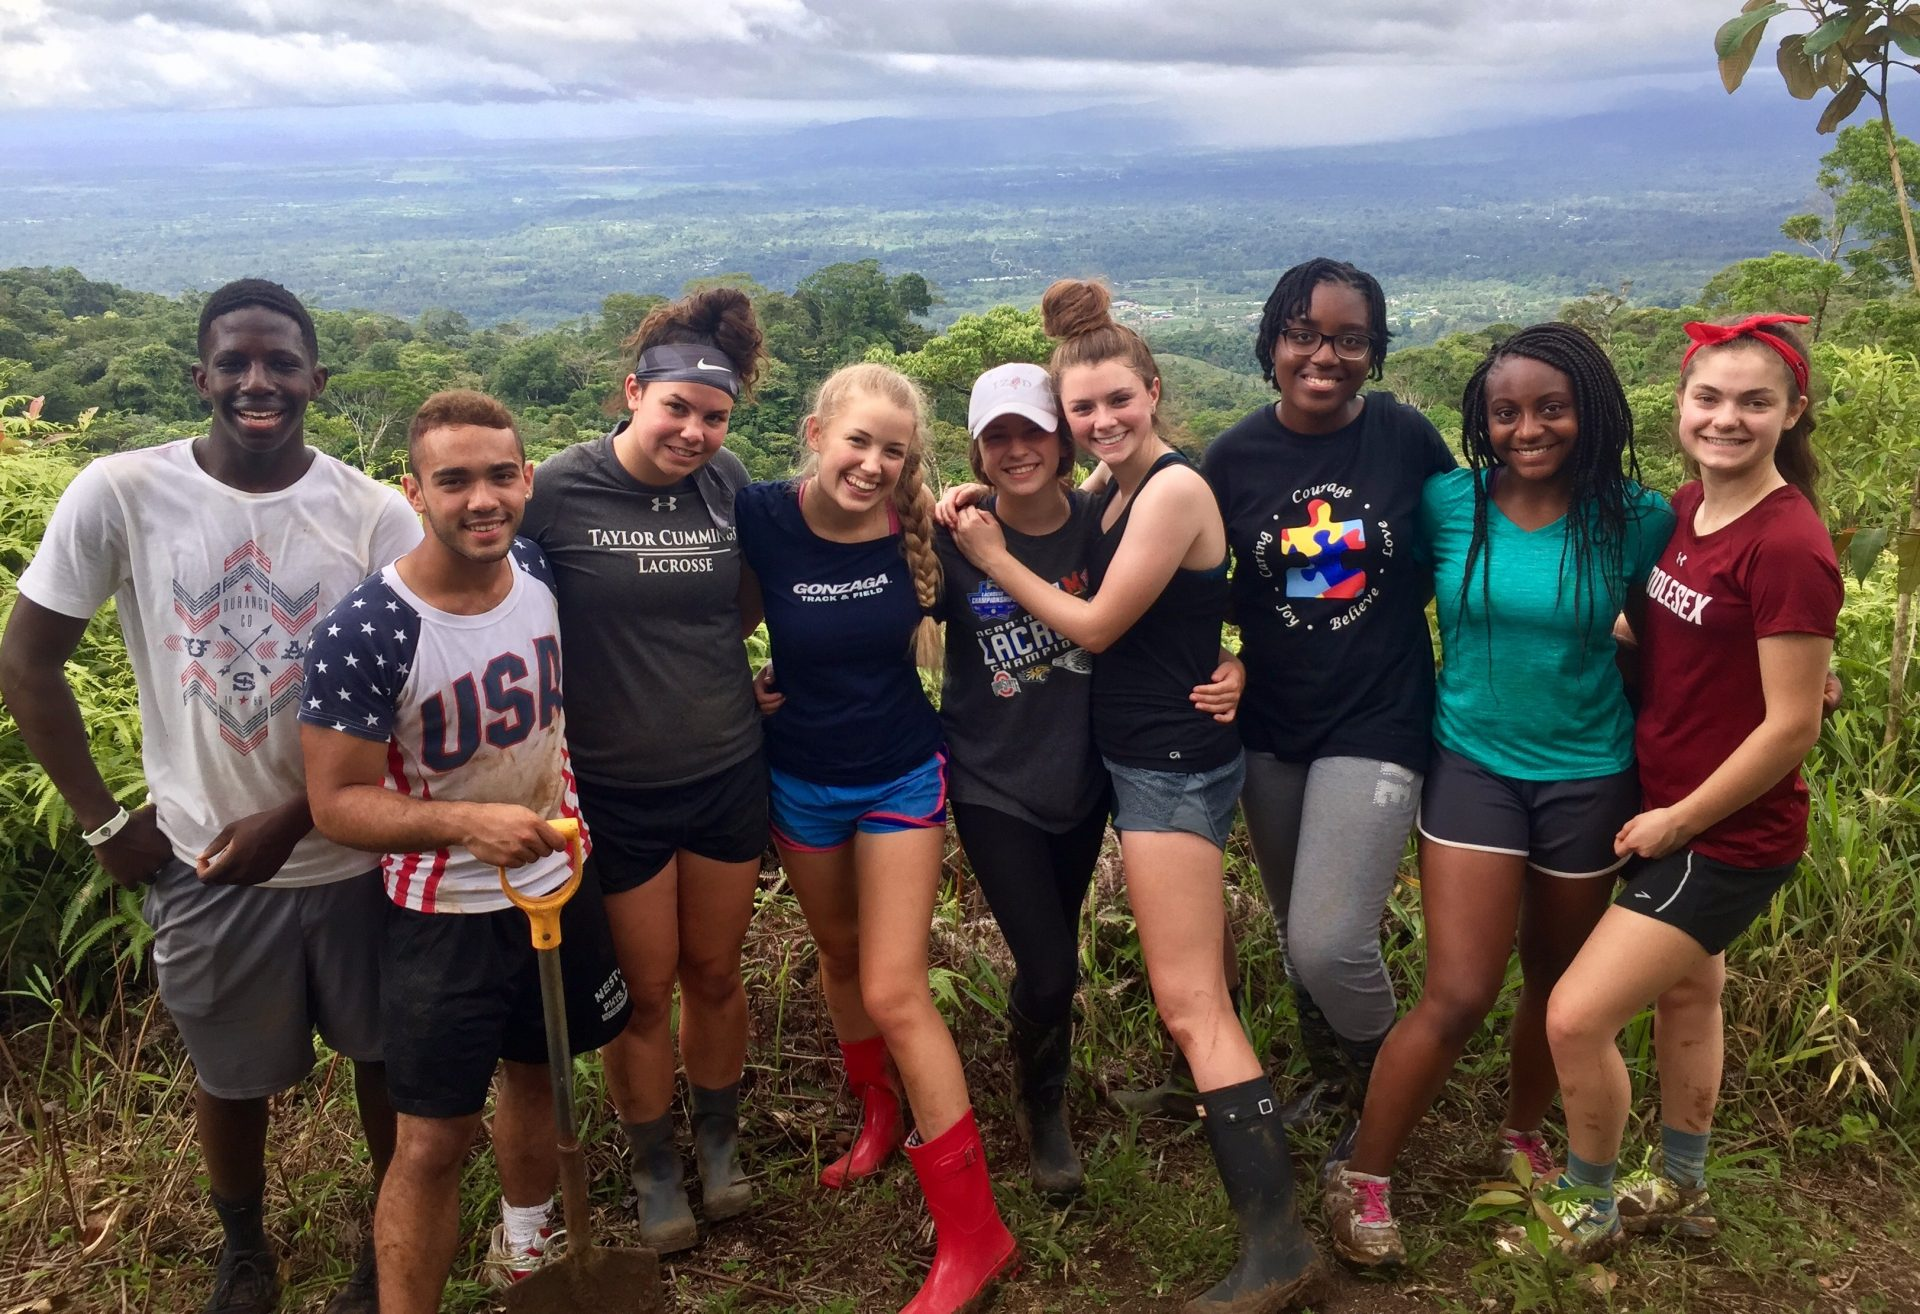 Group of teens with arms around each other in Costa Rica